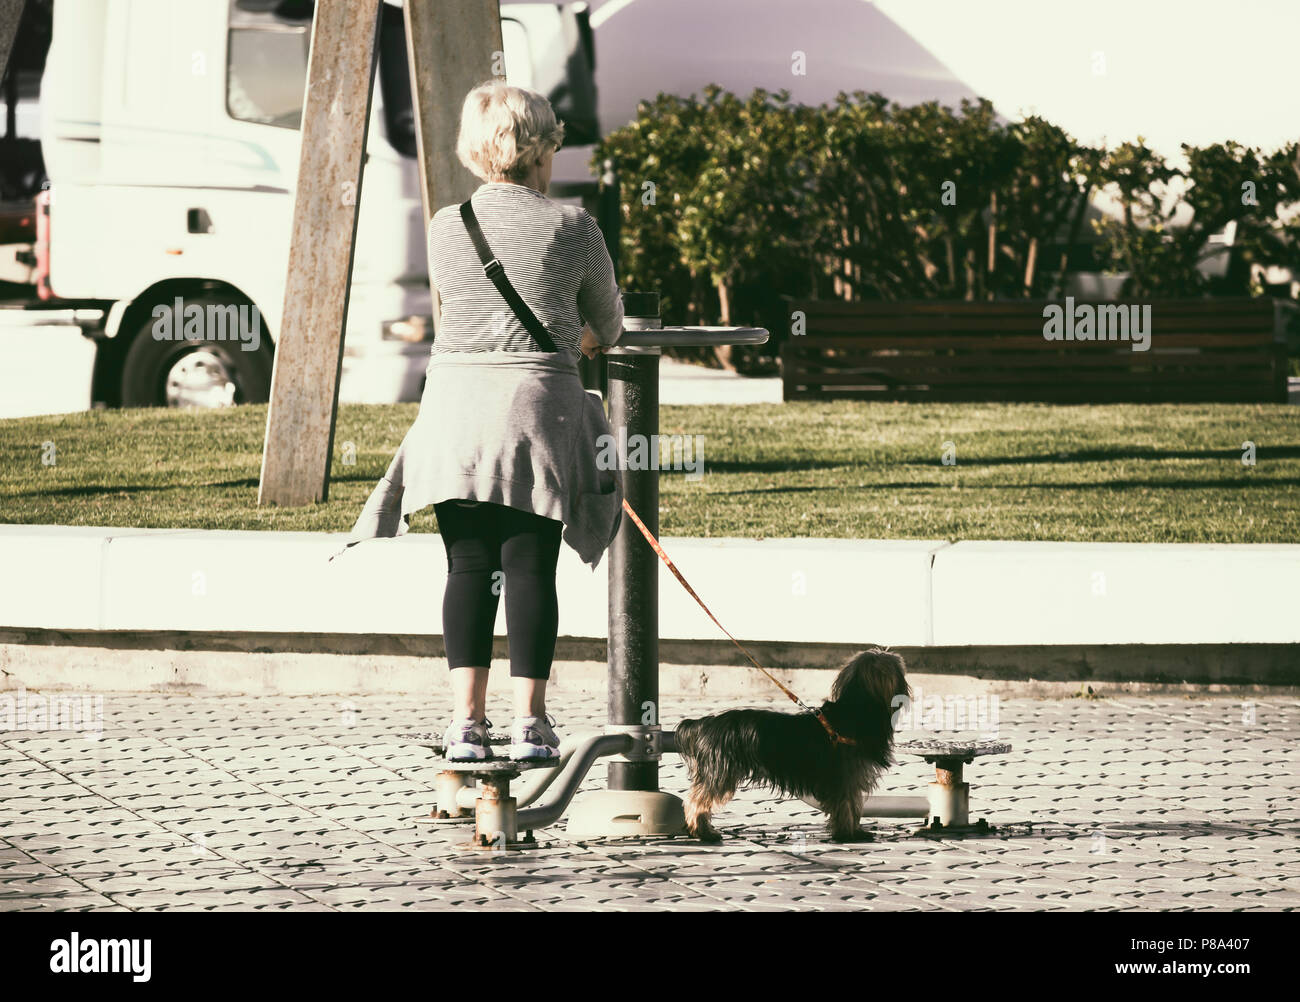 Elderly woman walking dog using outdoor exercise machine on city street in Spain - Stock Image